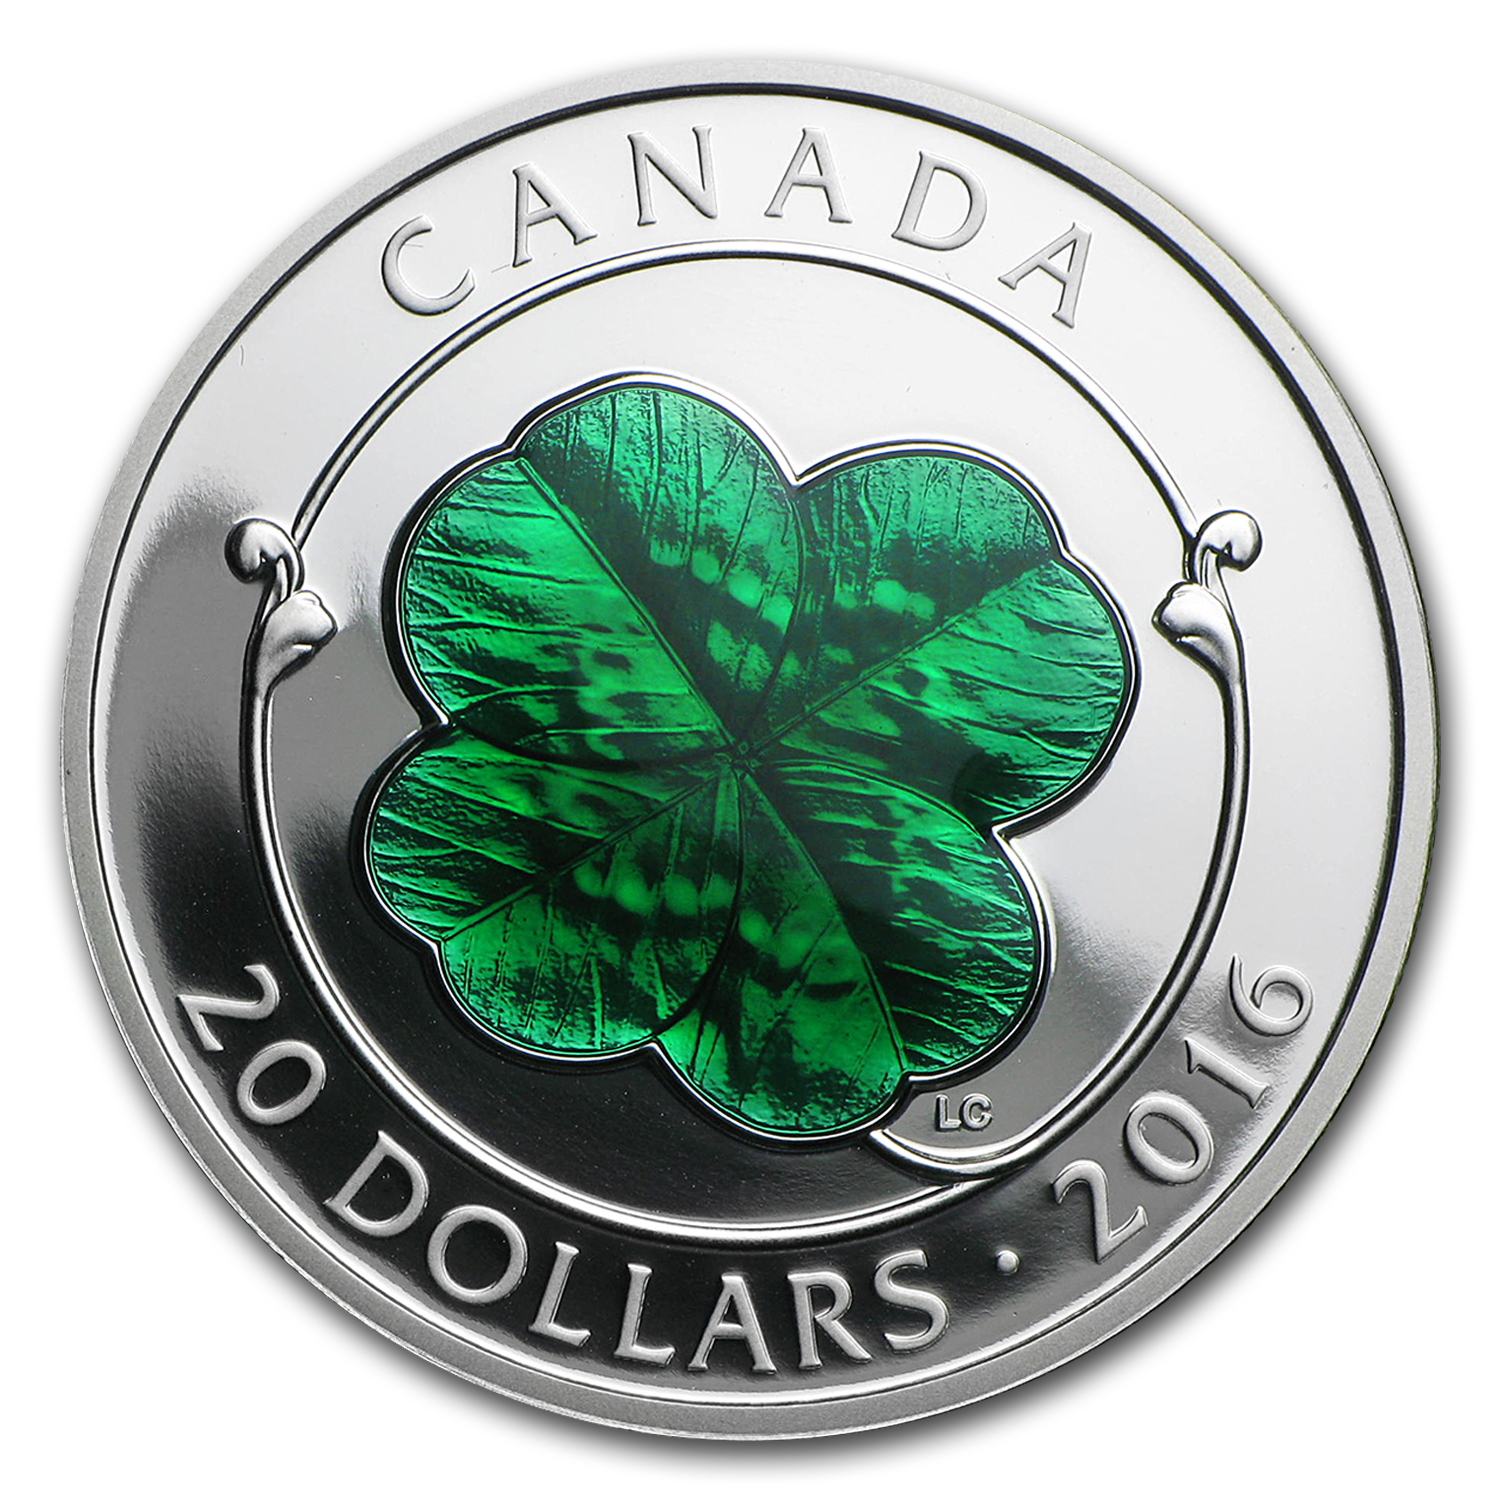 2016 Canada 1 oz Silver $20 Four-Leaf Clover Proof